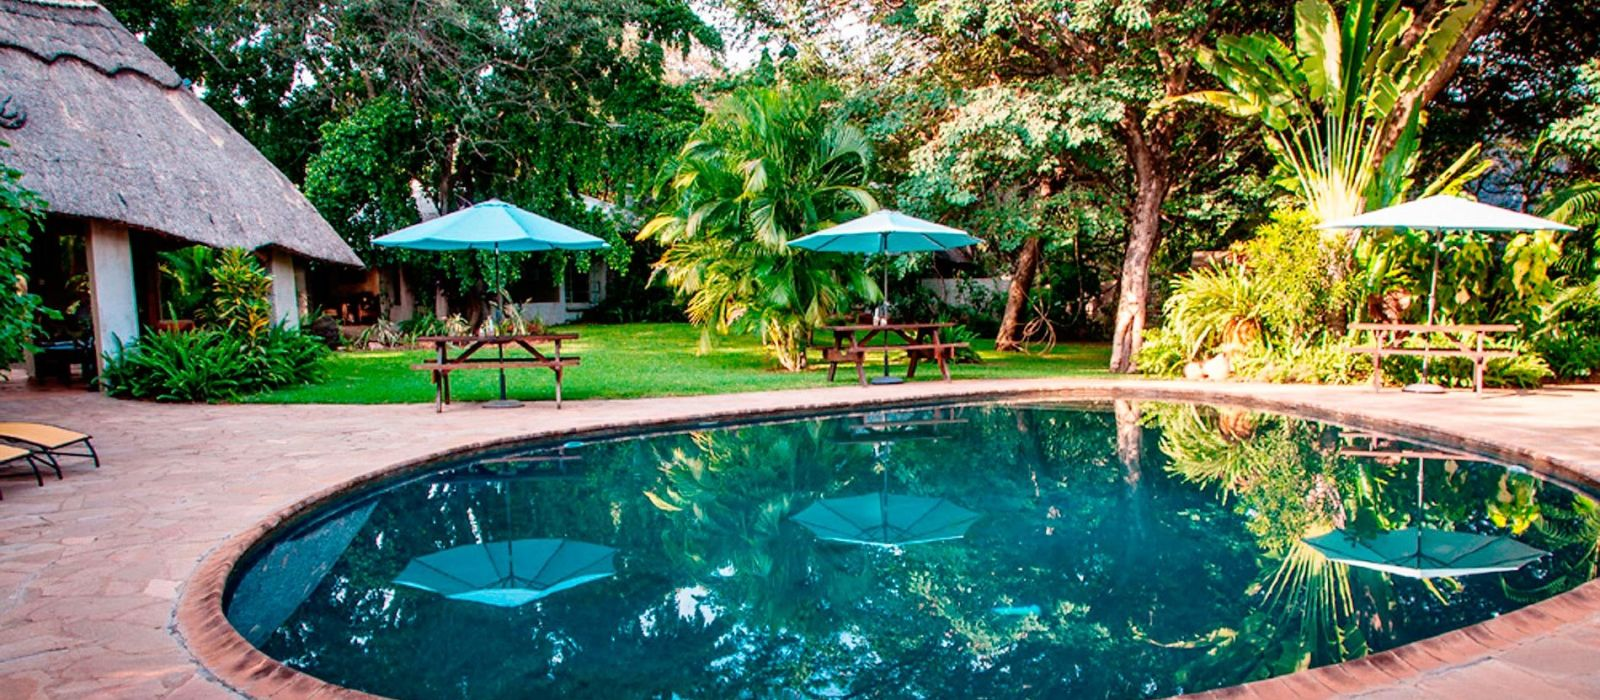 Hotel Bayete Guest House Simbabwe